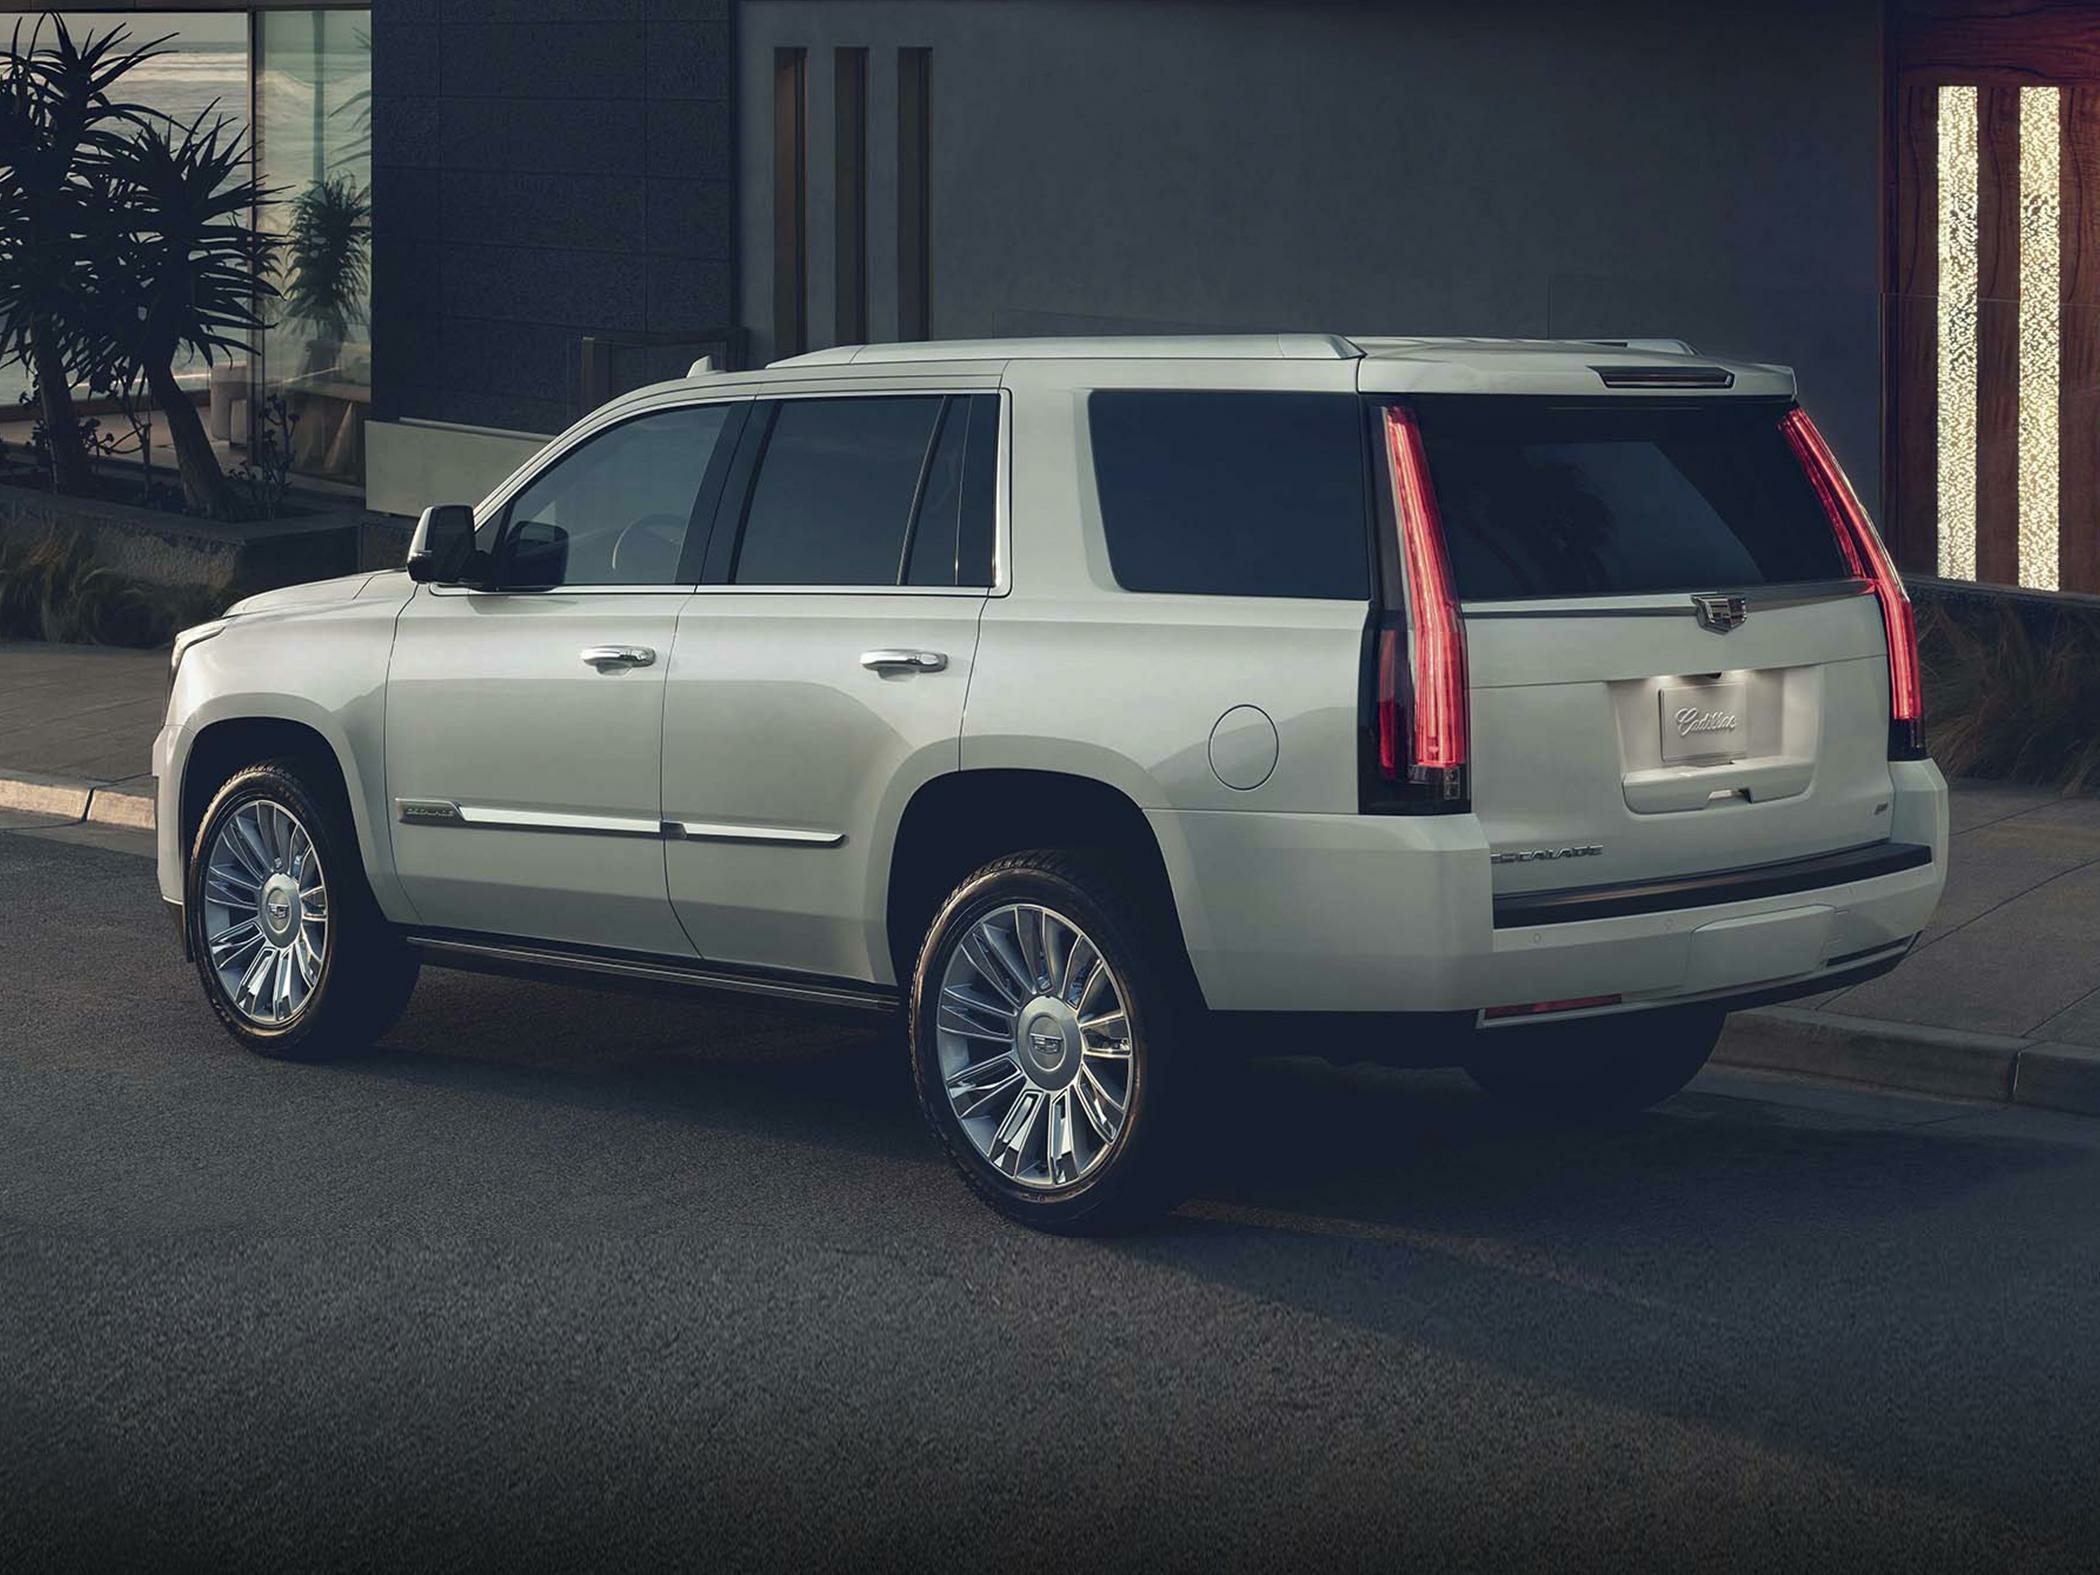 sale for taylor escalade at toledo oh cadillac of new